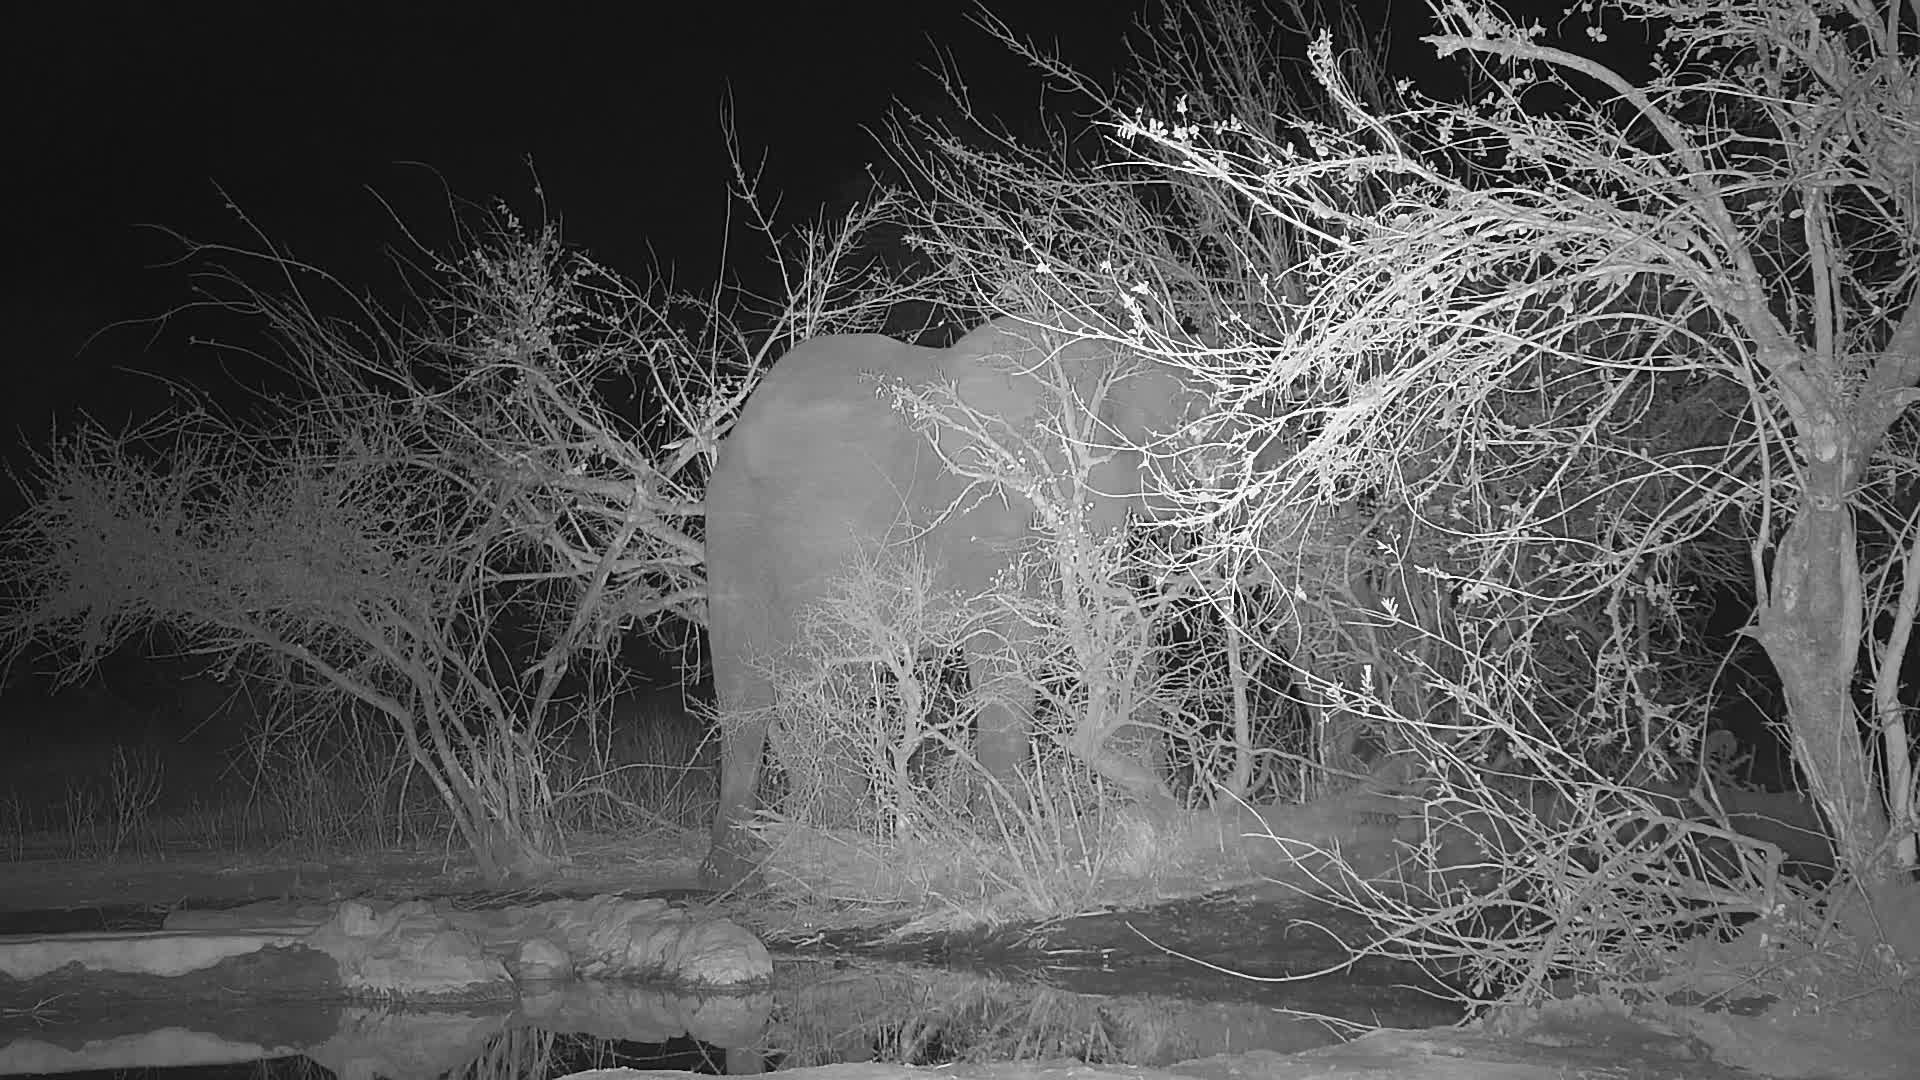 VIDEO: Elephant explores the bushes at the waterhole